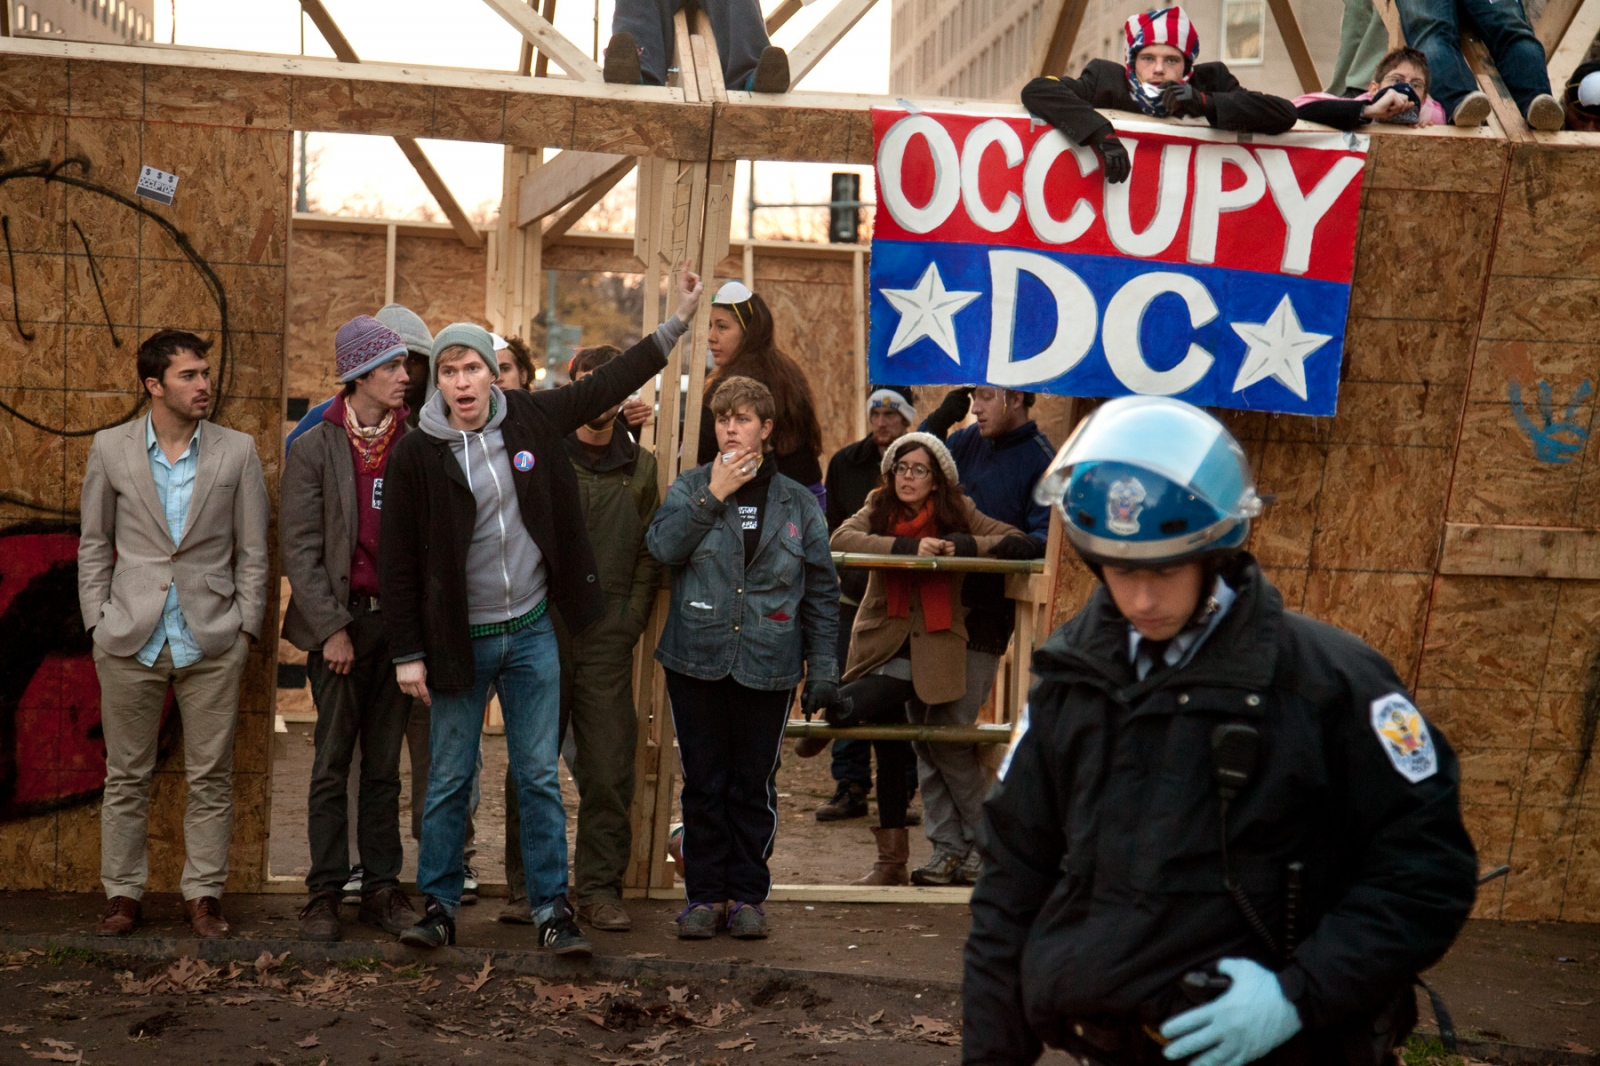 Occupy D.C. protesters refuse to leave the wooden shelter they erected, creating a day-long standoff with the U.S. Park Police.